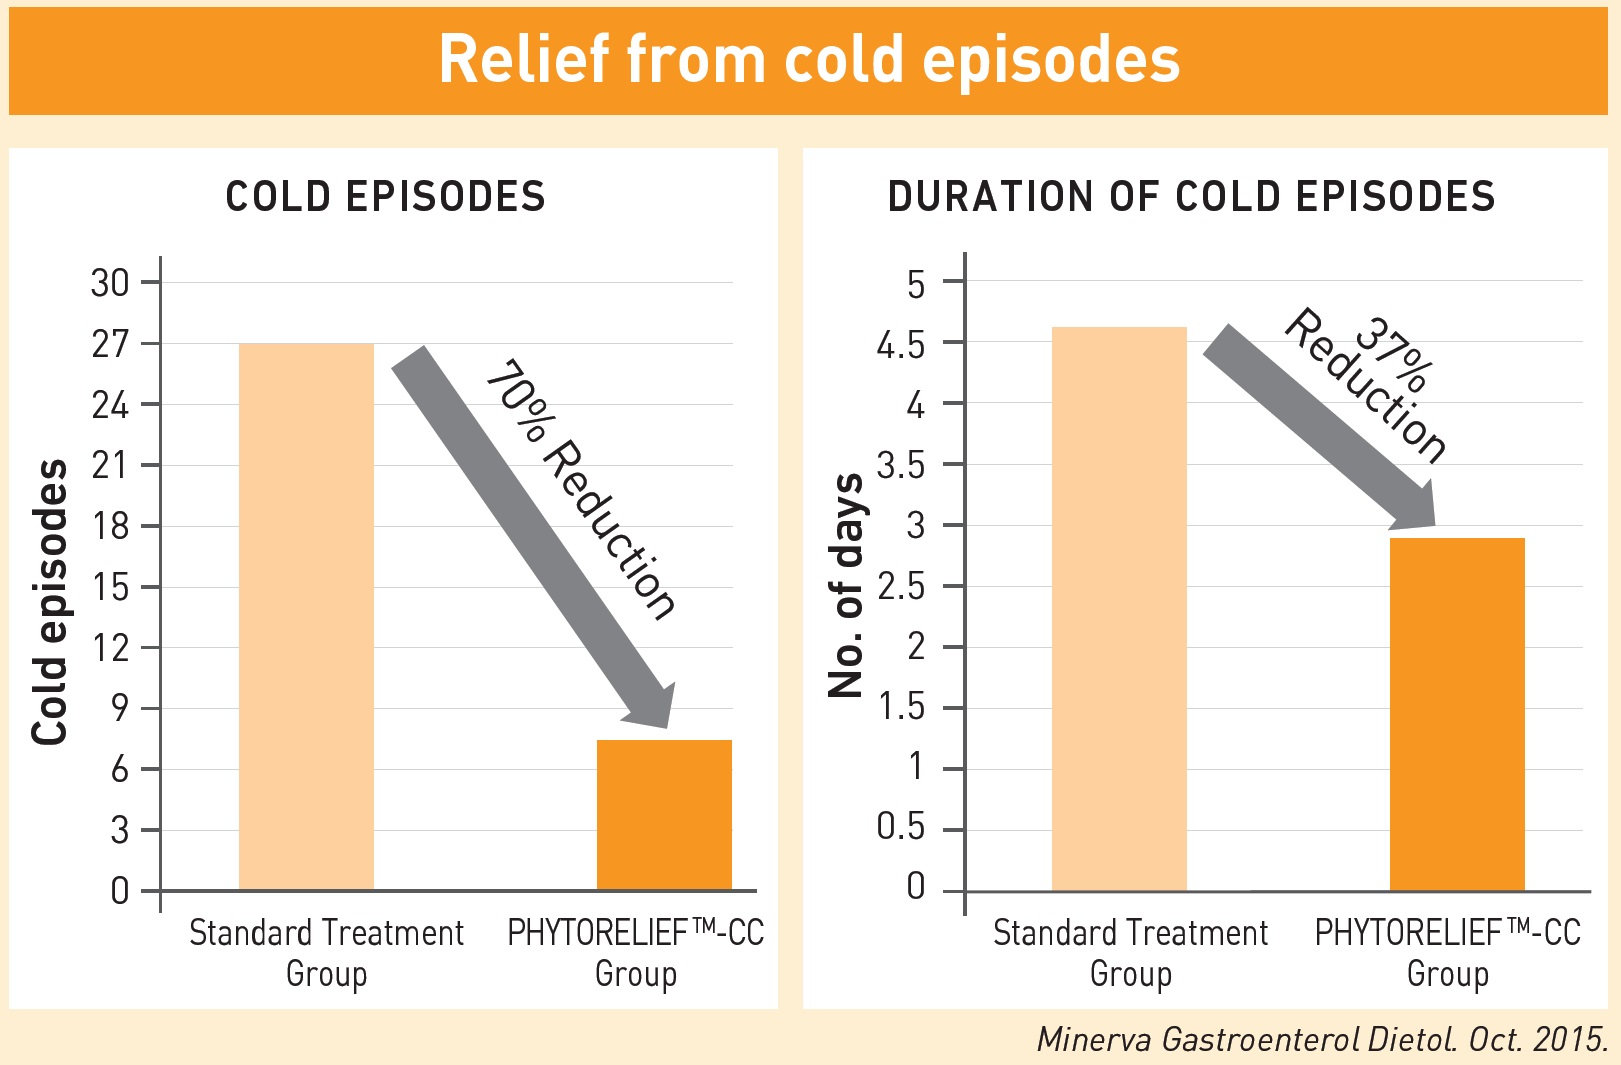 Relief from Cold Episodes